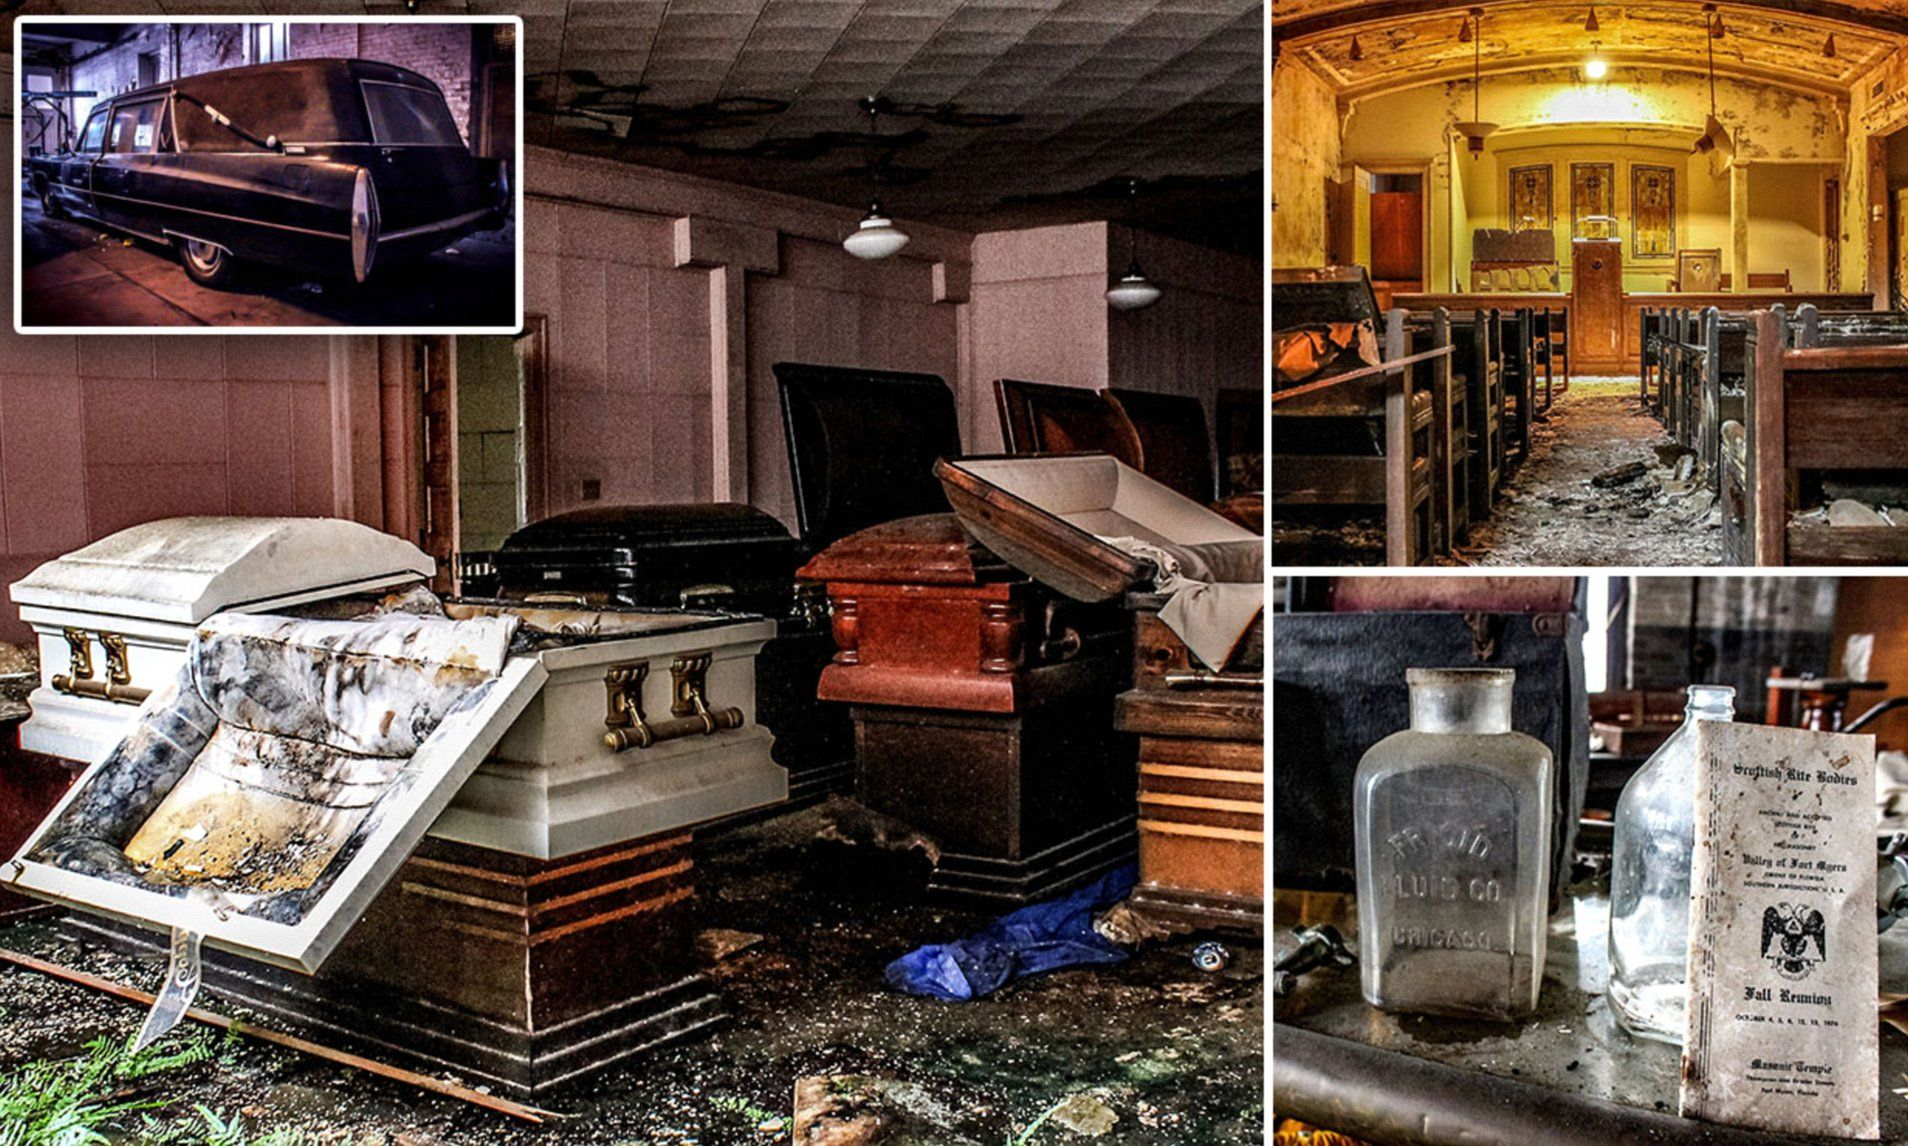 Eerie images abandoned funeral home where coffins are